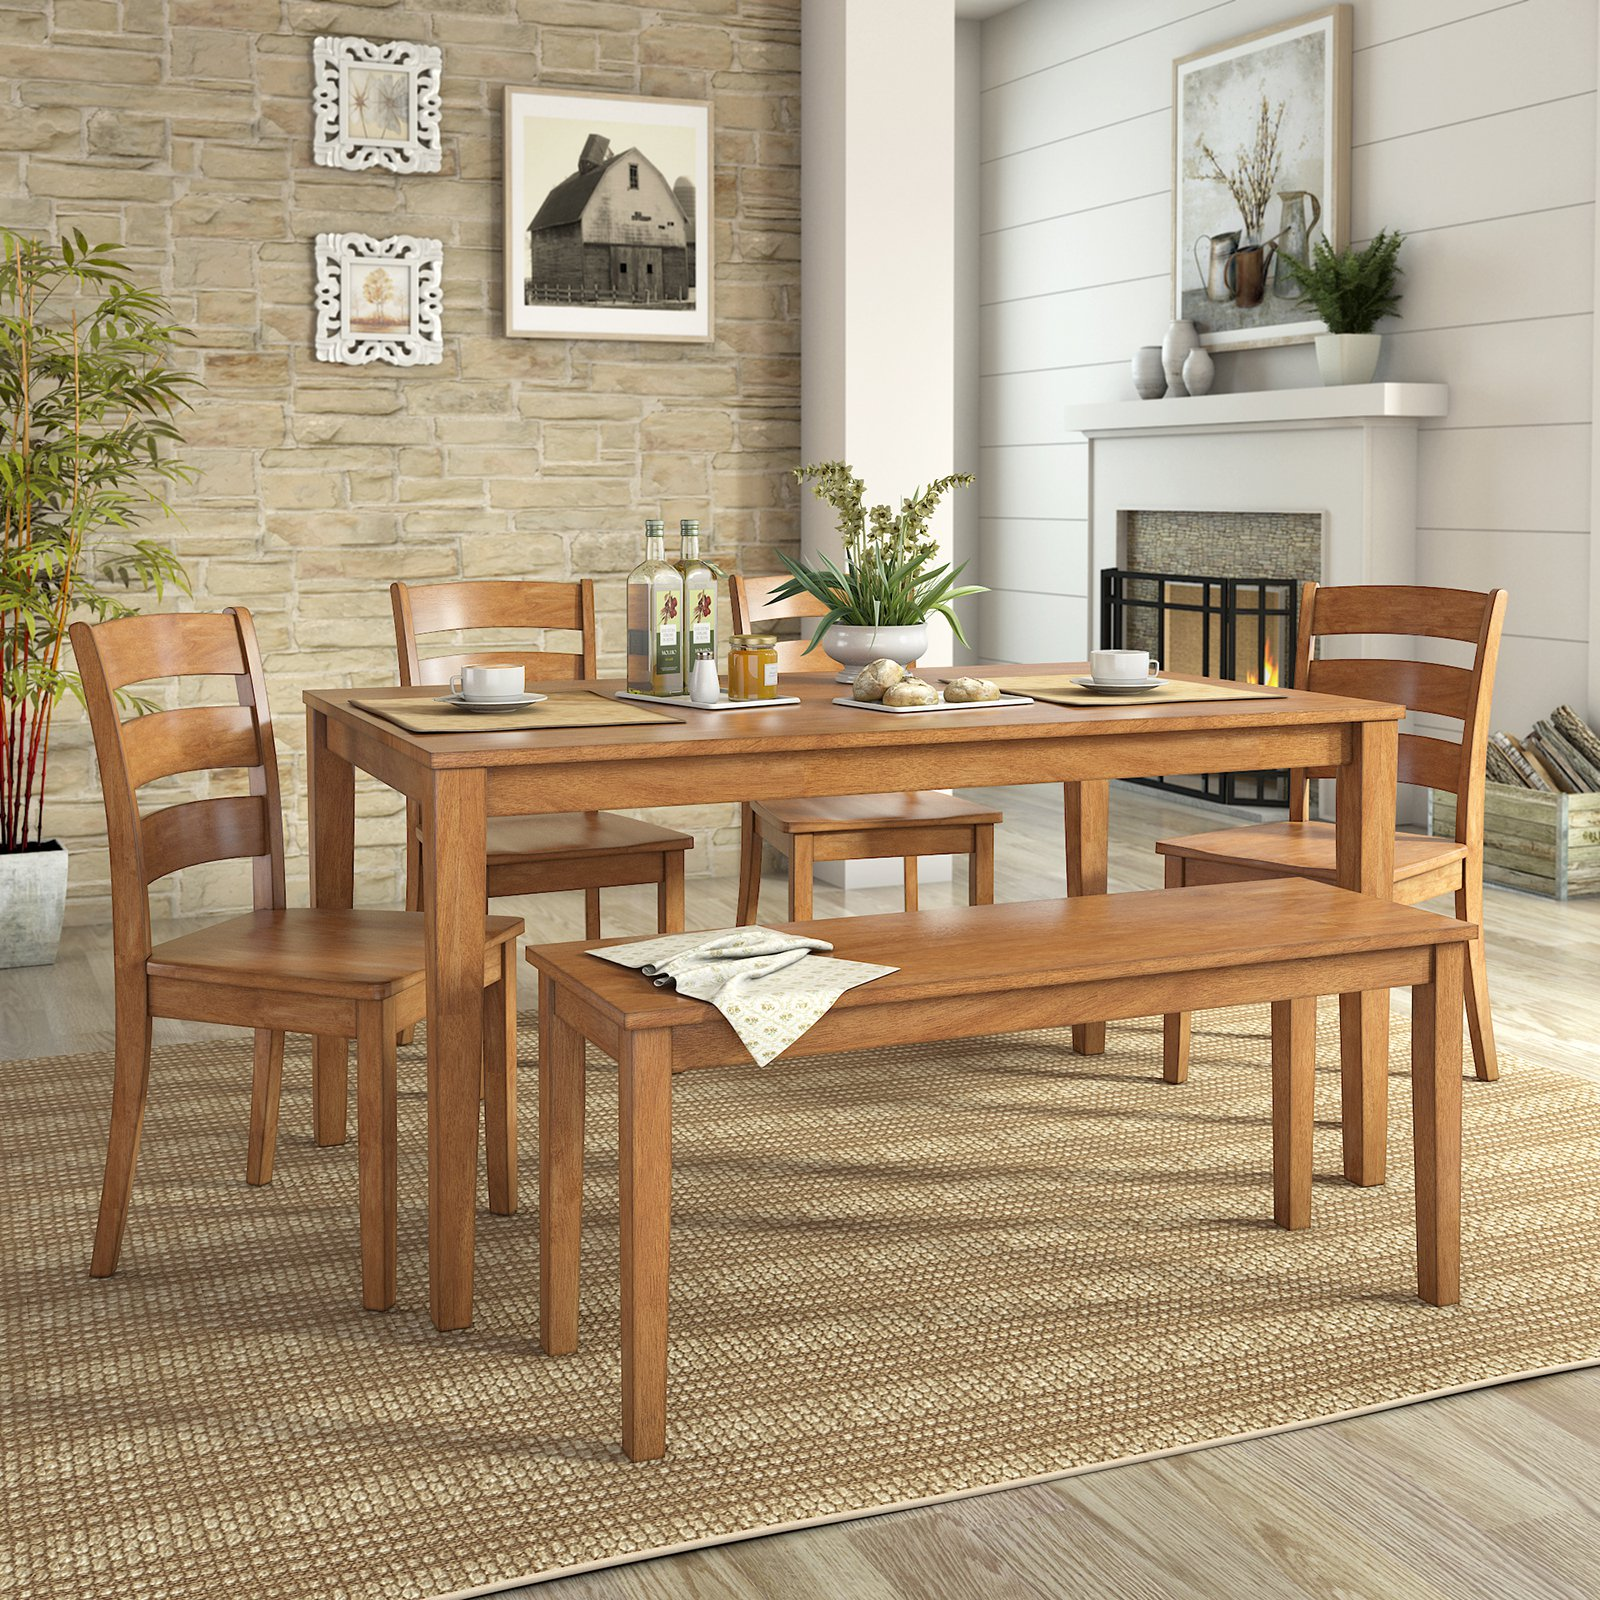 Weston Home Lexington Dining Set with Bench and 4 Ladder Back Chairs